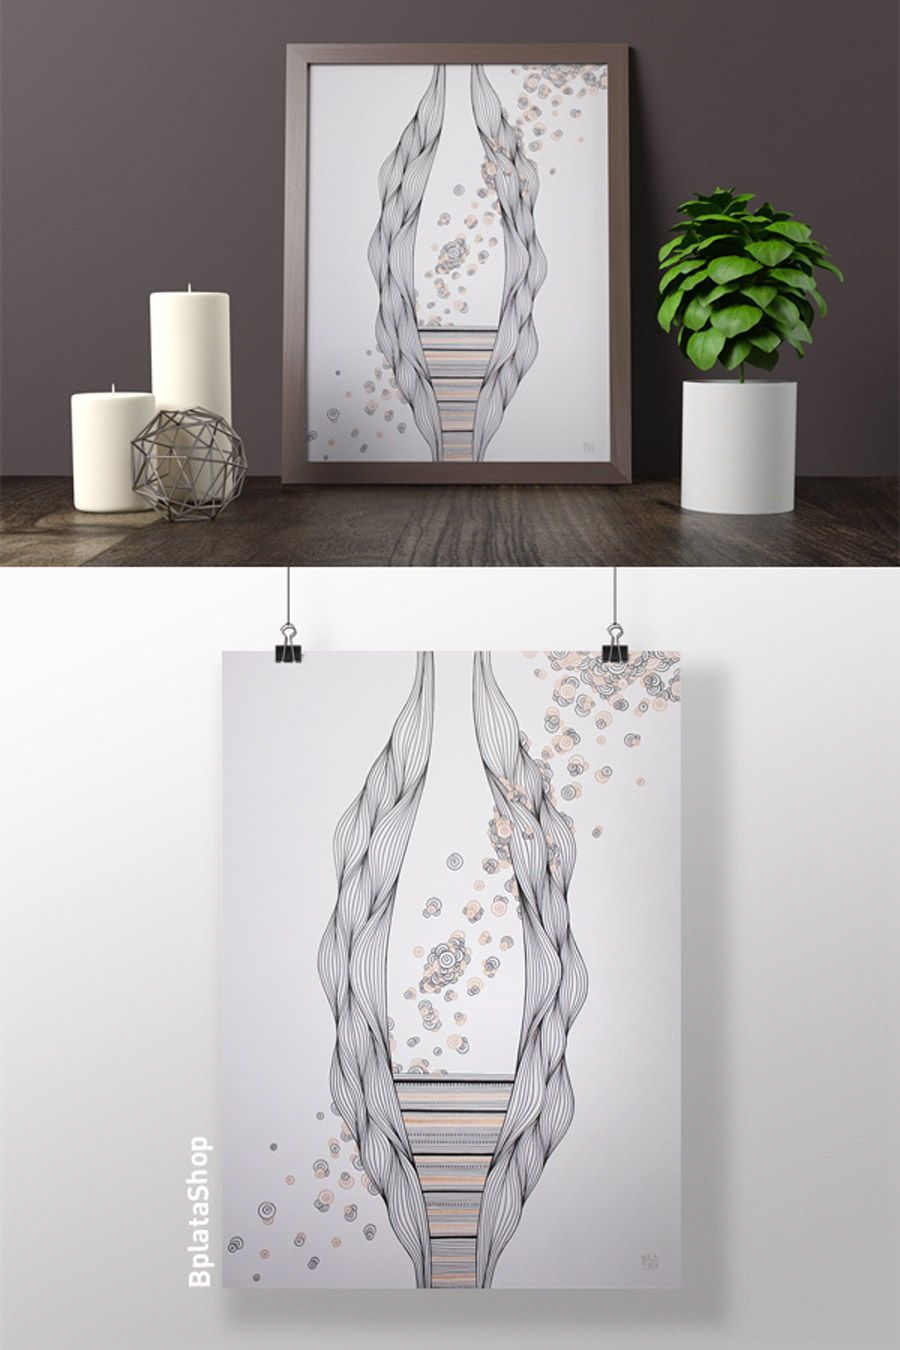 Decor your home with this elegant wall art and give it the trendiest style trendydecor elegantdecorations homewishlist   shop our pins also rh pinterest